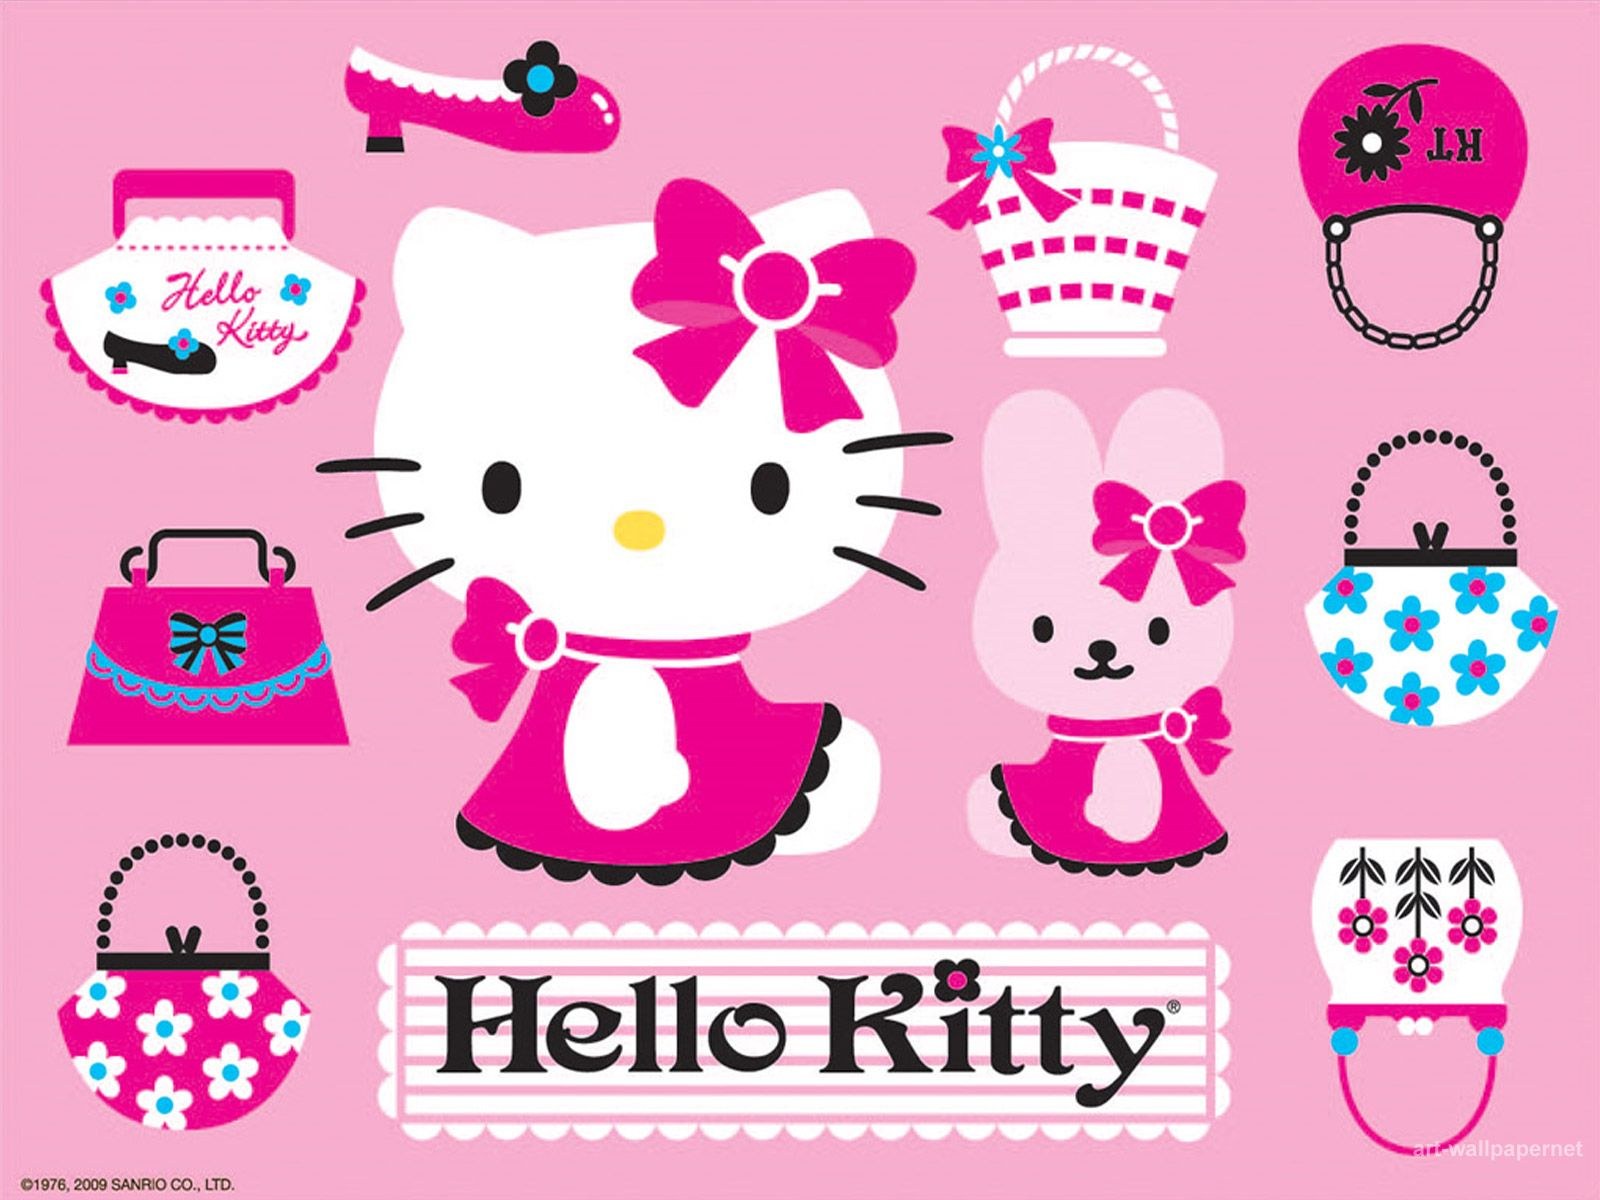 Hello Kitty Poster Art Free Wallpaper Hello Kitty Iphone Wallpaper Hello Kitty Wallpaper Hello Kitty Images